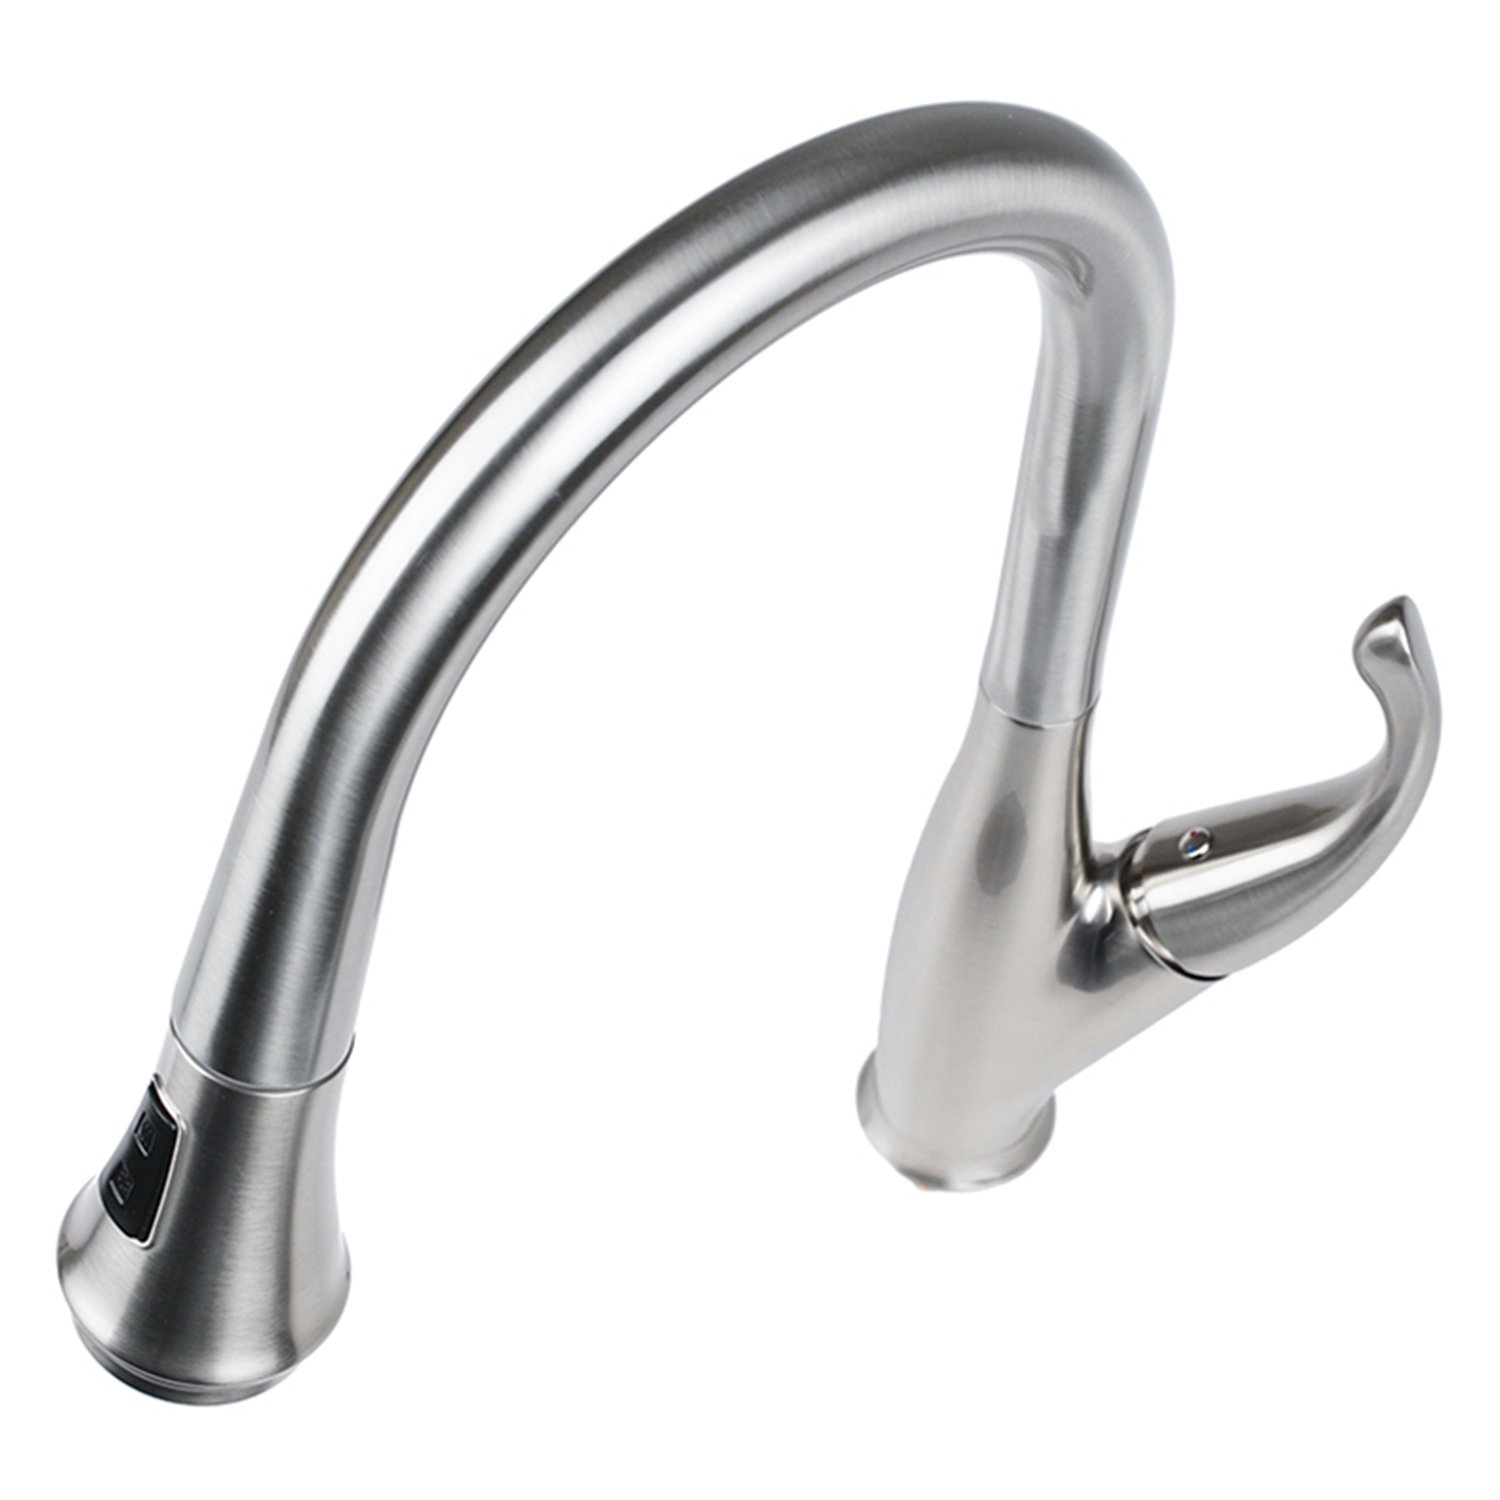 Cosmo COS-KF548SS Modern Luxury High Arc Pull-Down Tap Mixer Kitchen Faucet, Brushed Nickel by Cosmo (Image #3)